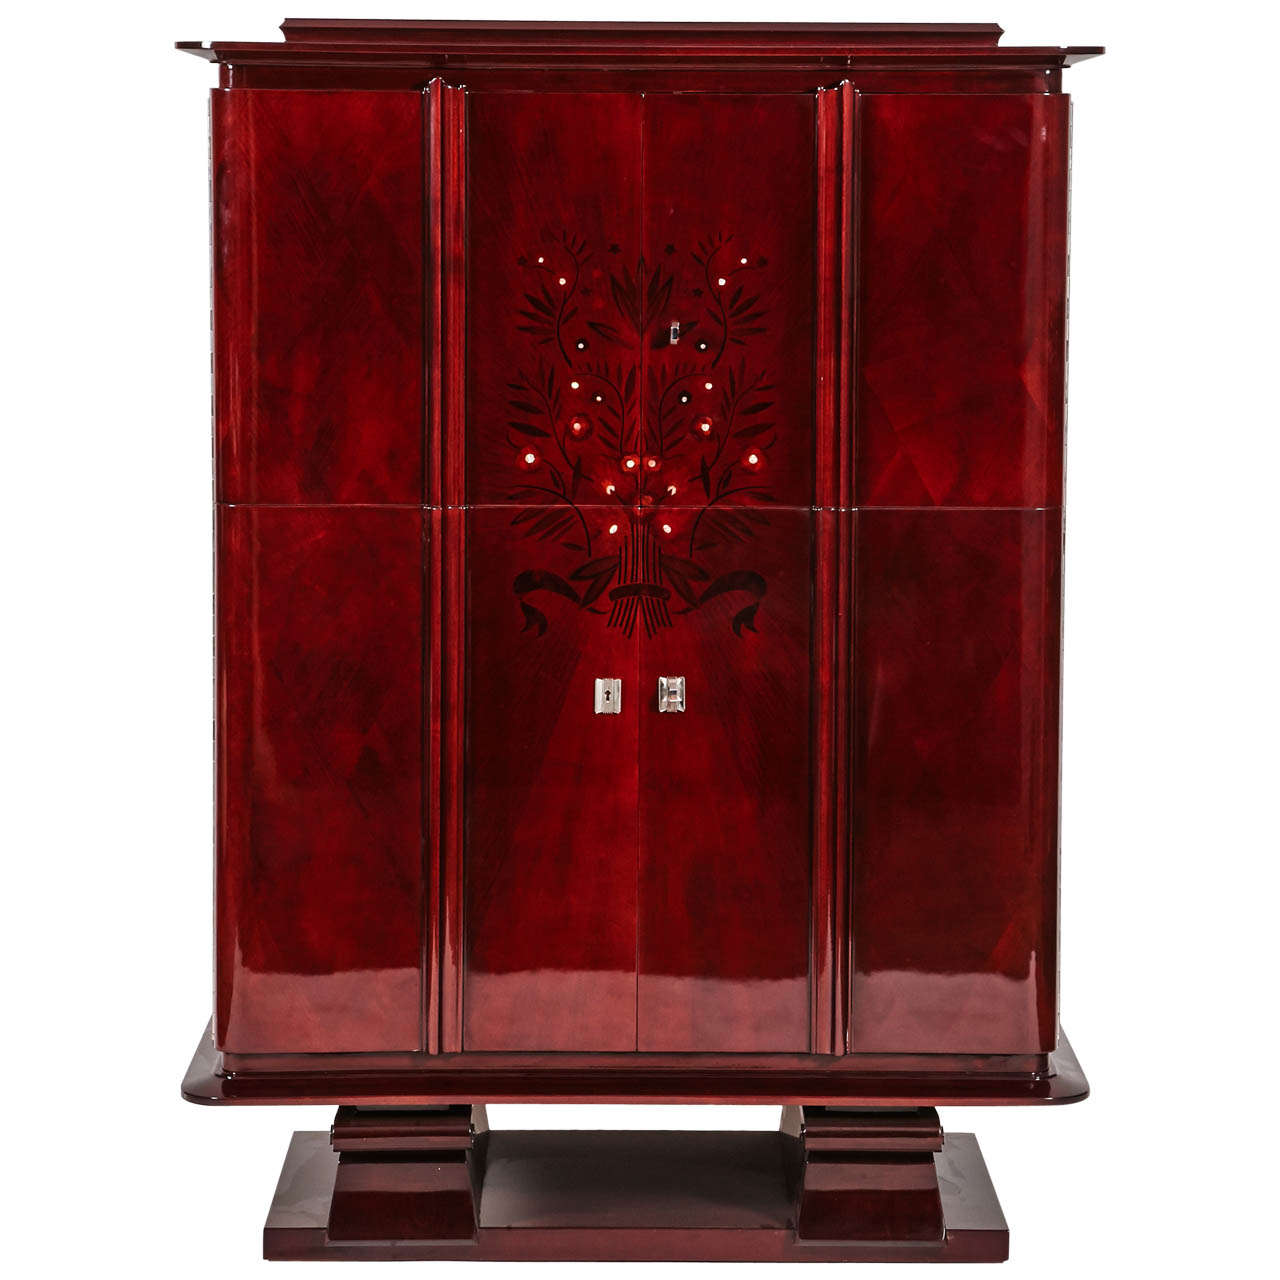 1940s Cocktail Bar Cabinet at 1stdibs